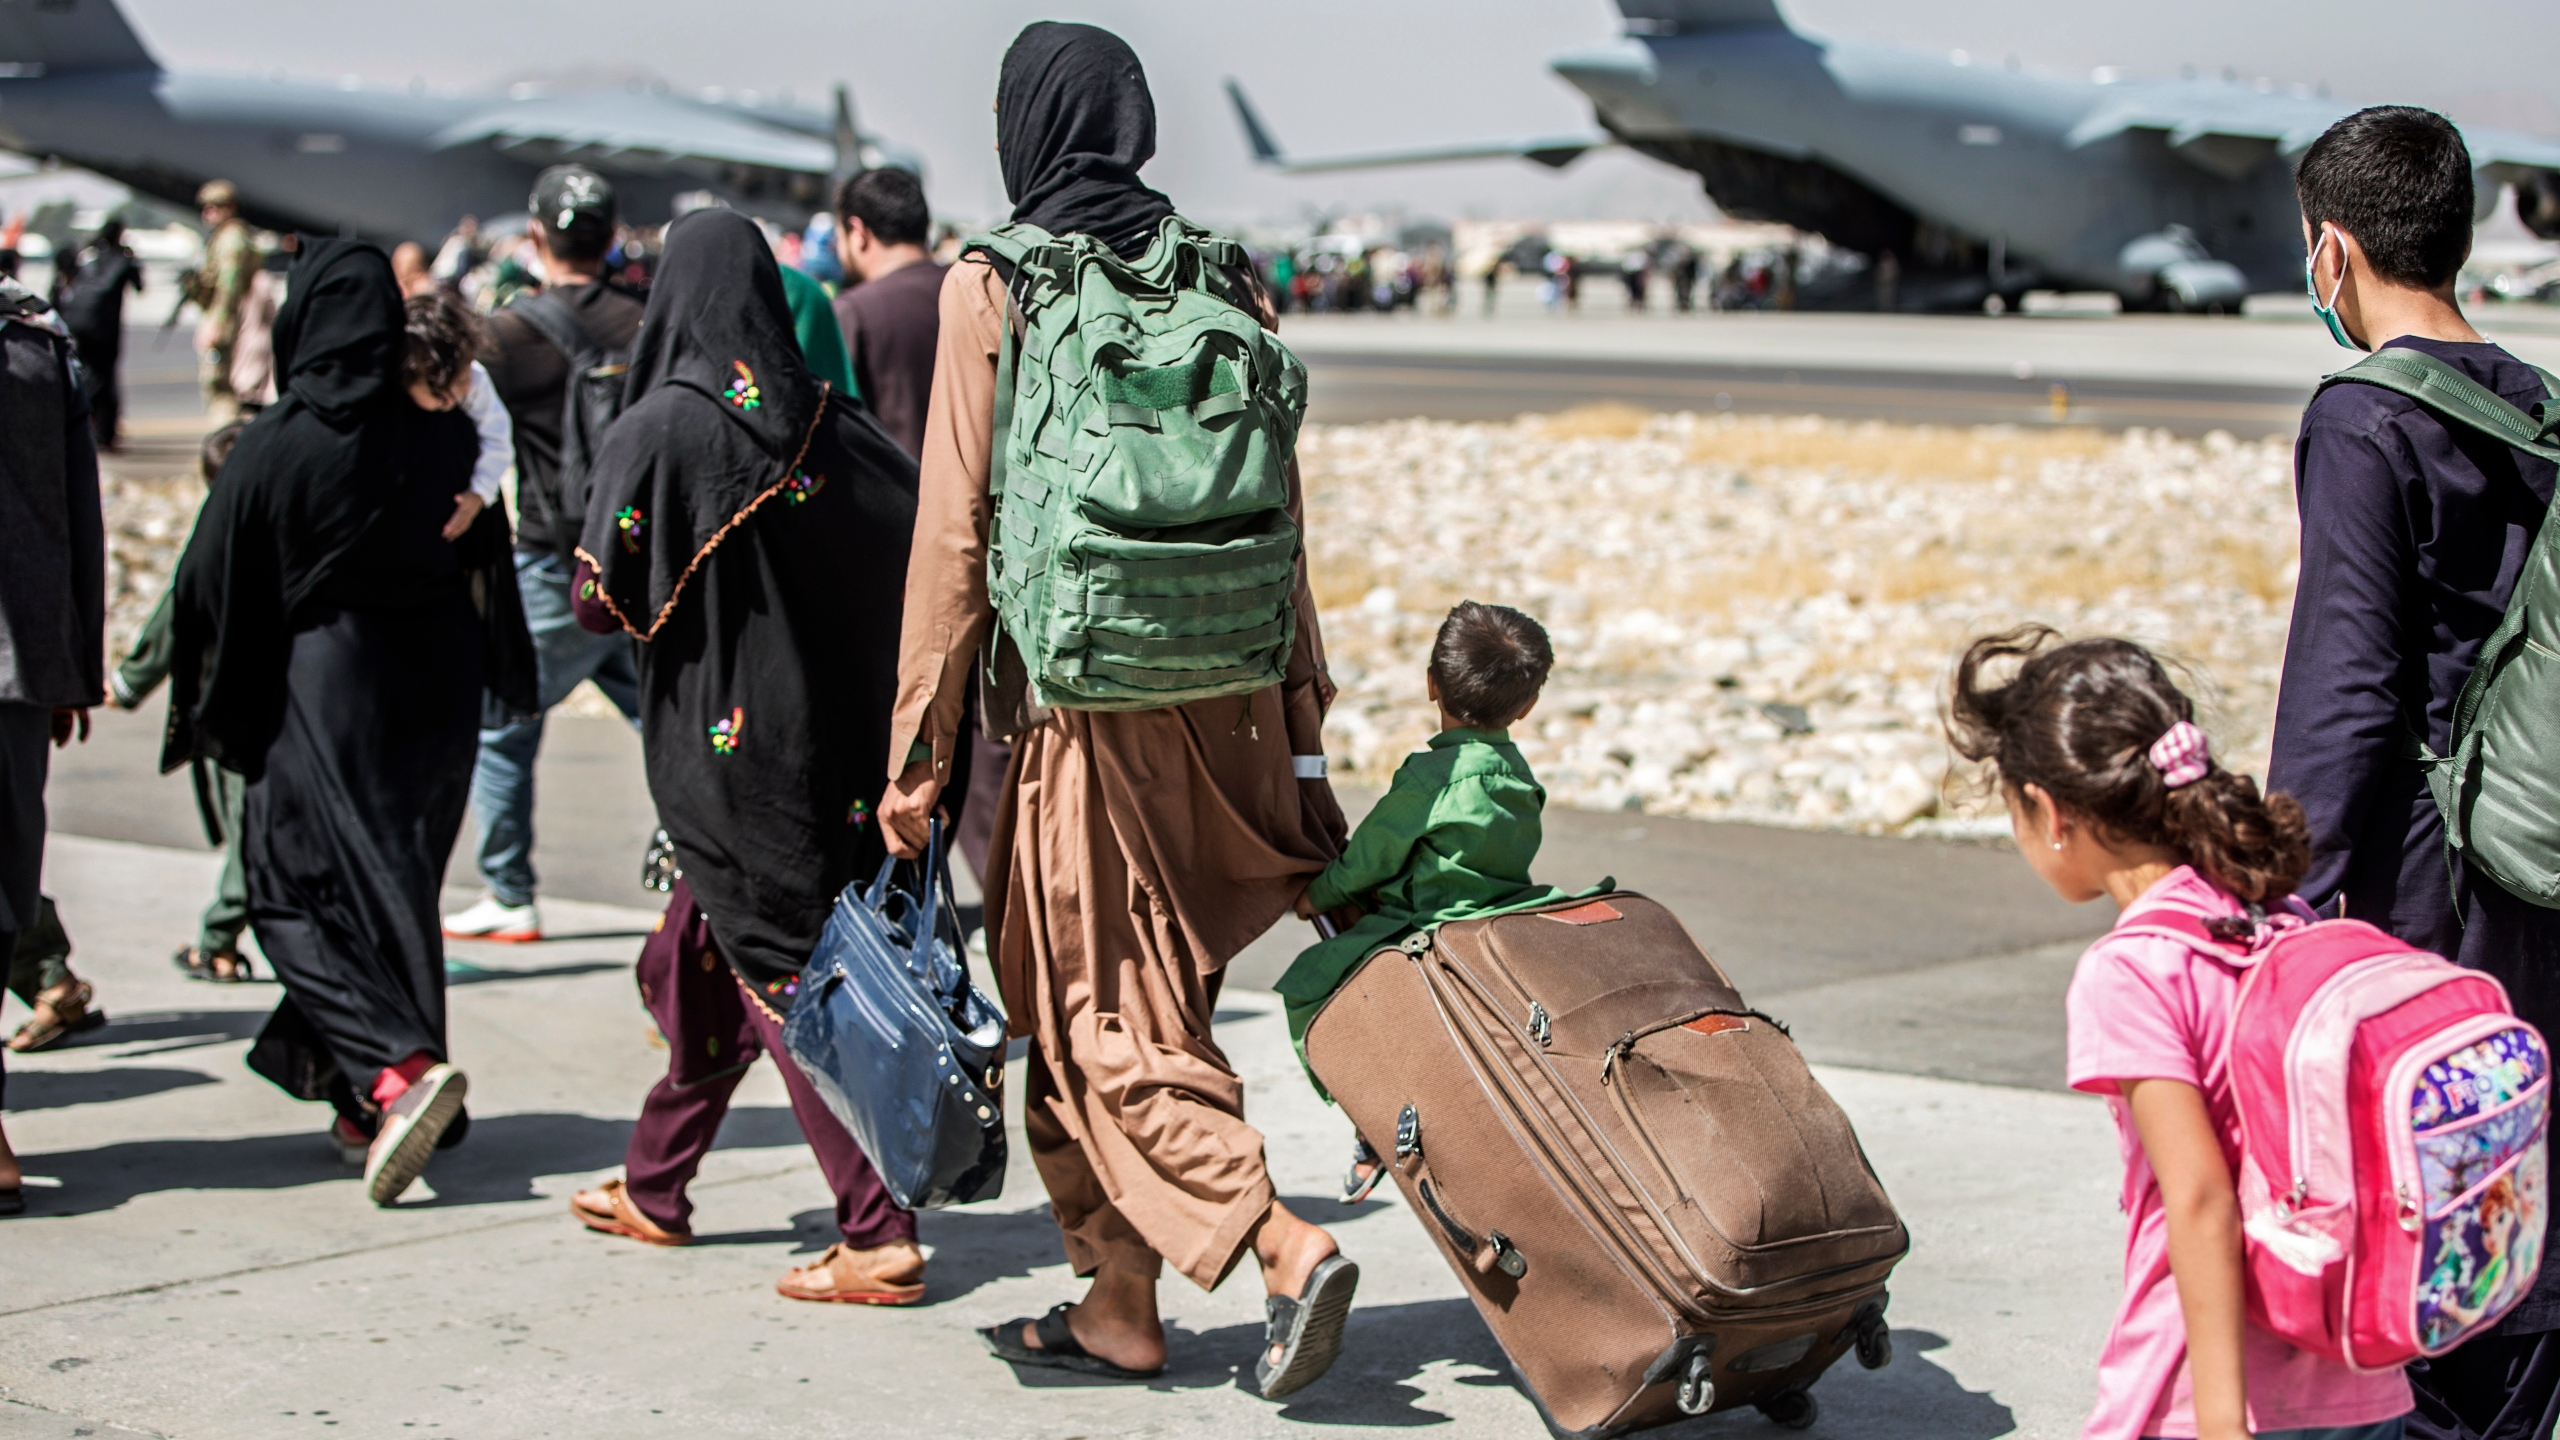 This file photo provided by the U.S. Marine Corps shows families walk towards their flight during ongoing evacuations at Hamid Karzai International Airport, in Kabul, Afghanistan on Aug. 24, 2021. (Sgt. Samuel Ruiz / U.S. Marine Corps via Associated Press)